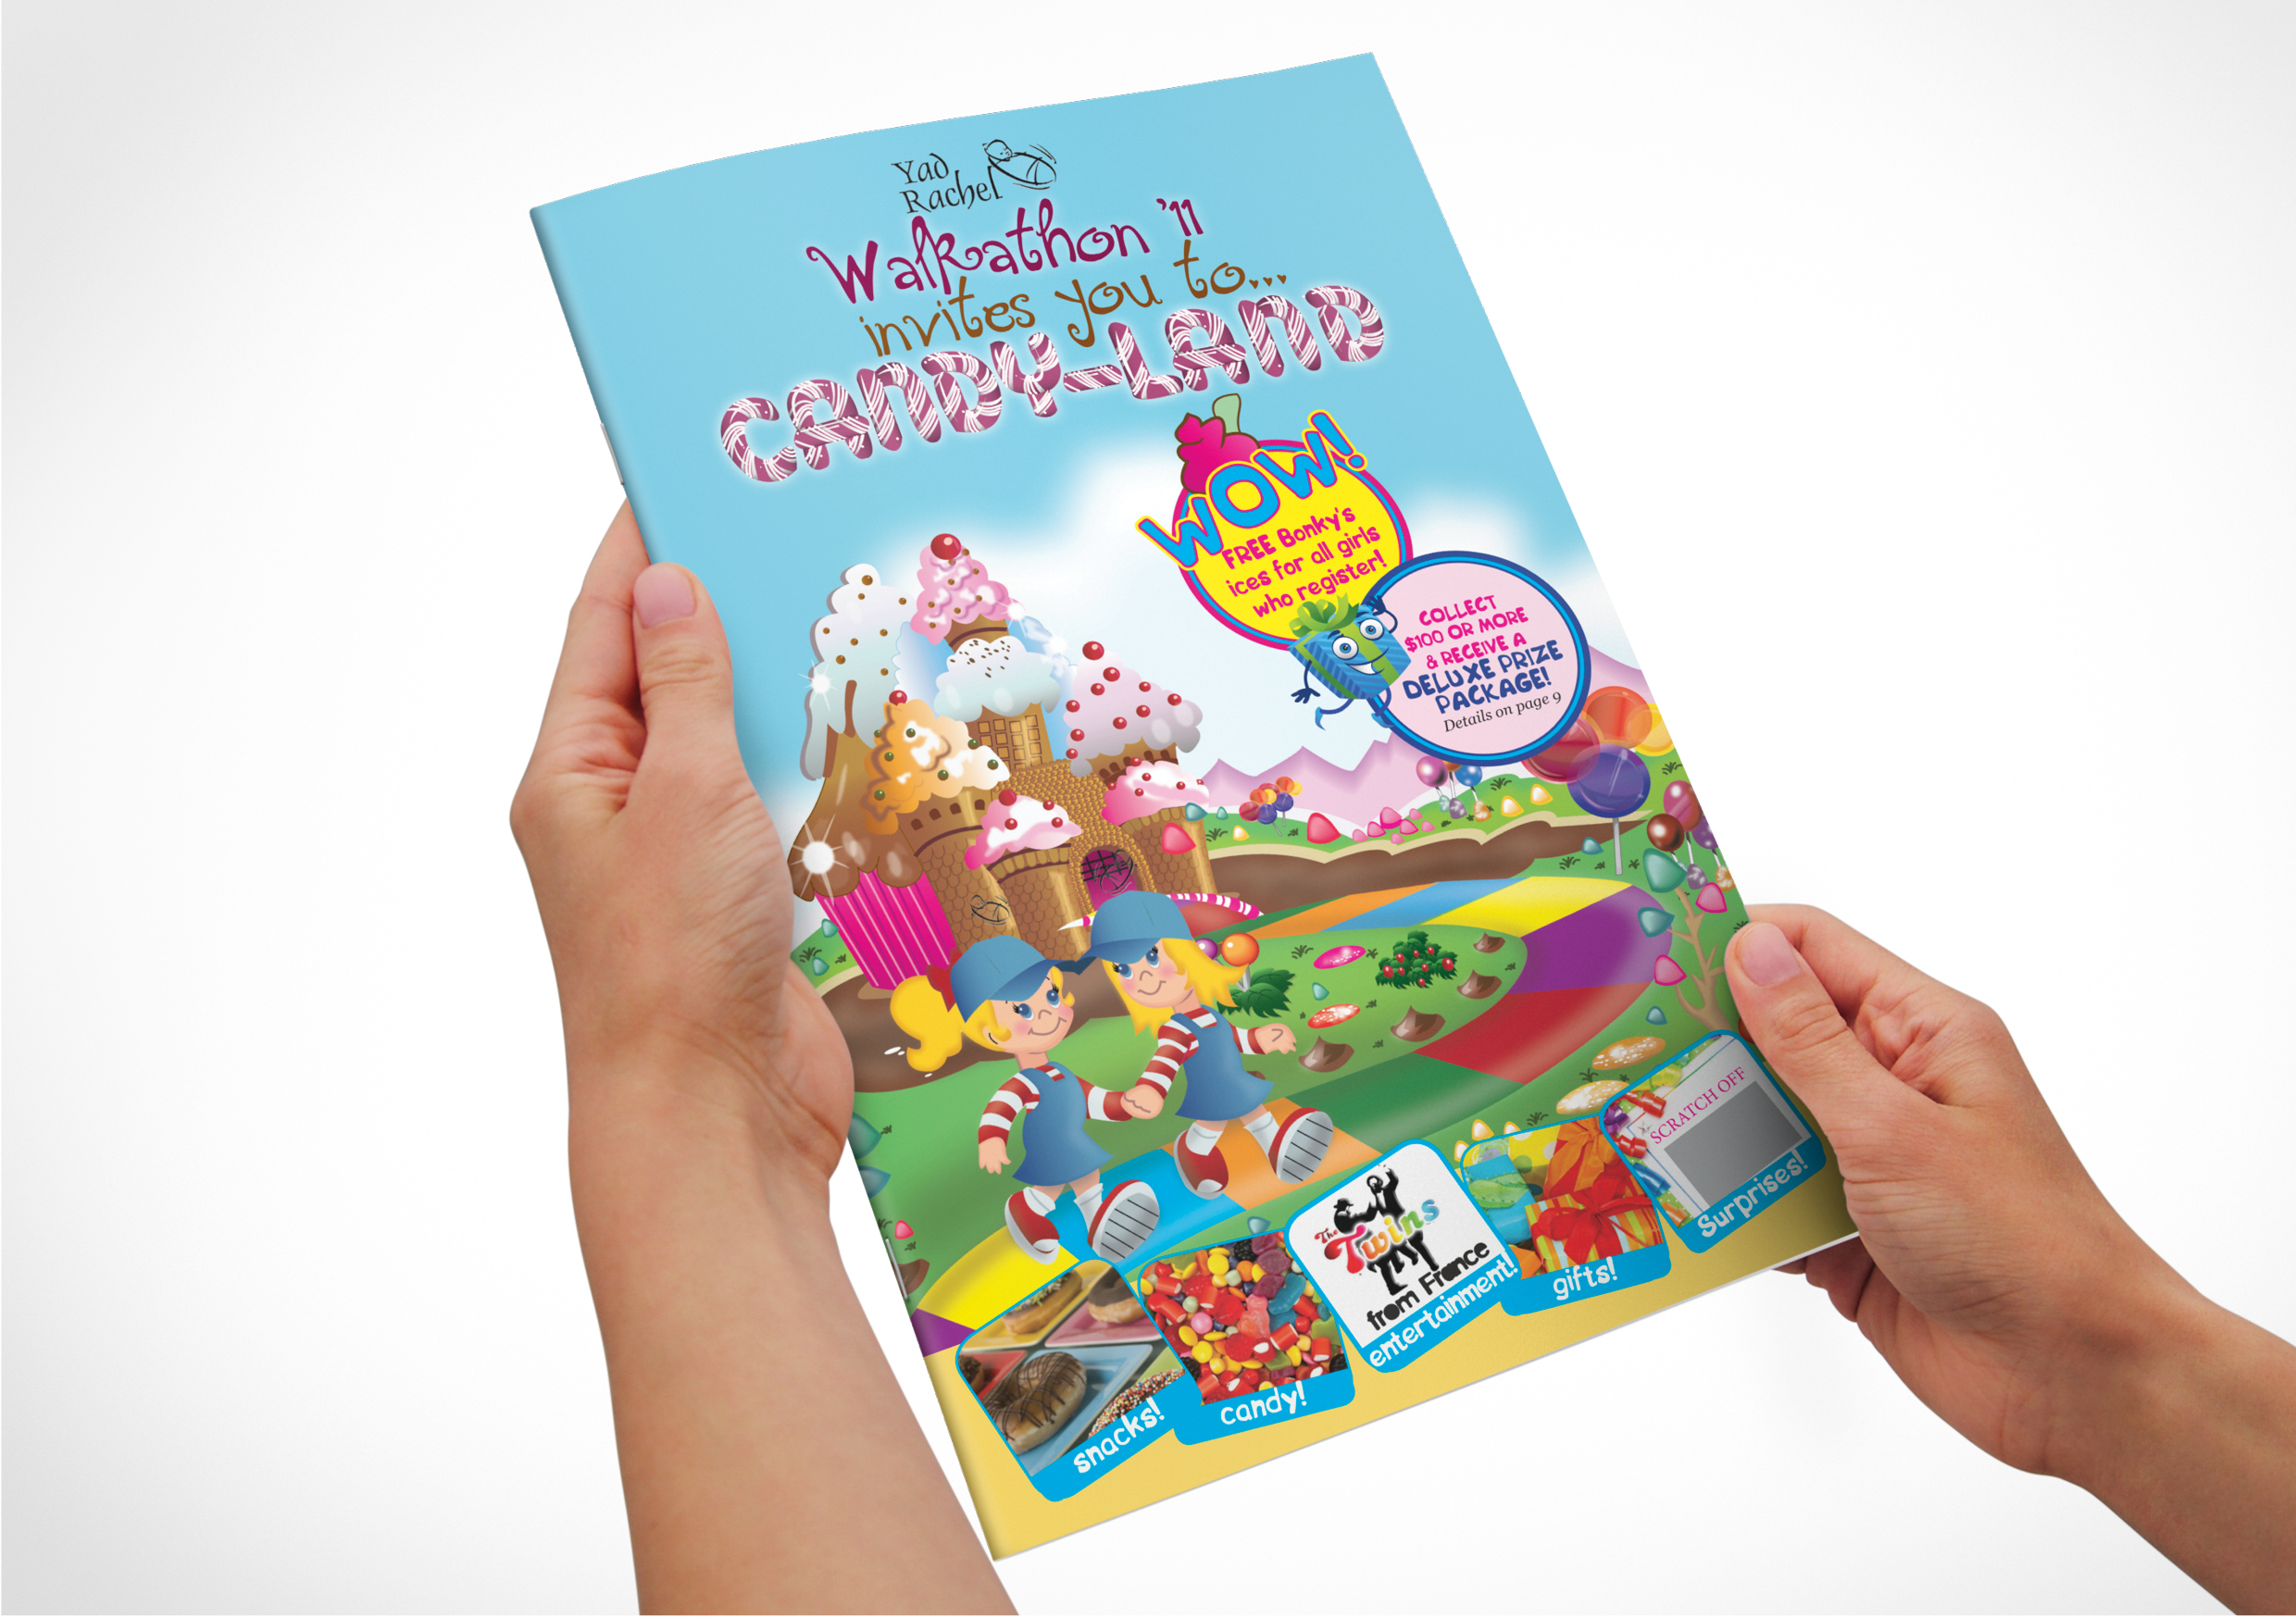 Walk-o-thon-booklet